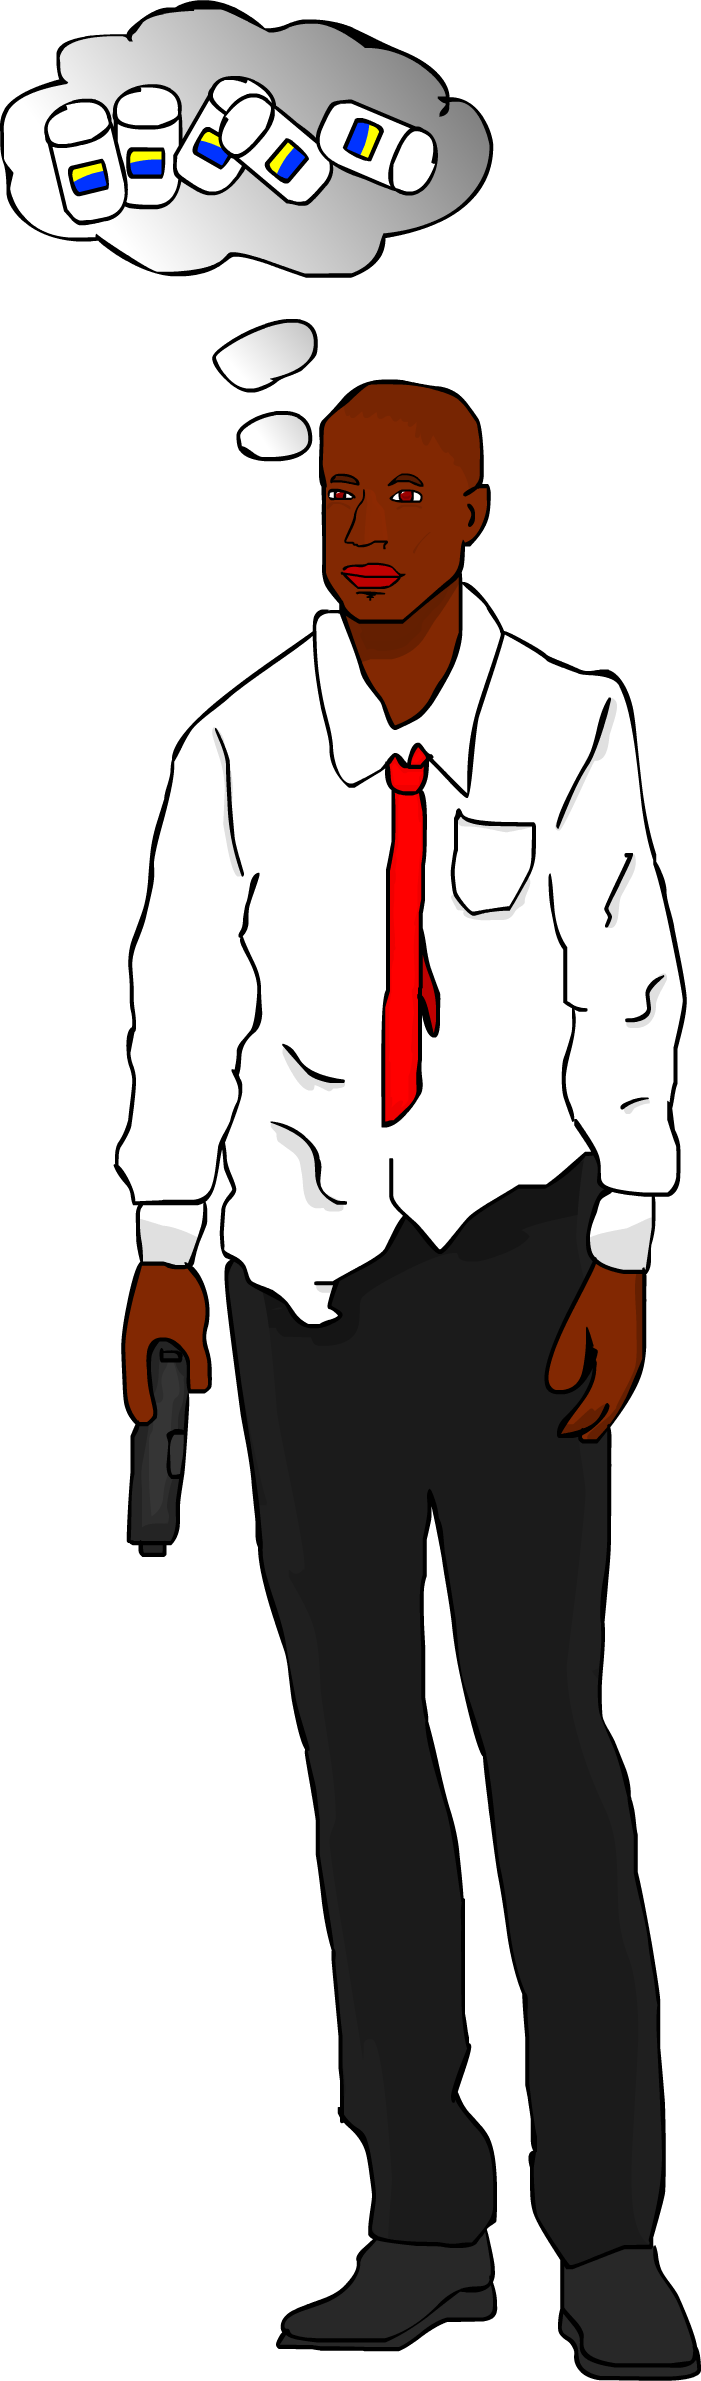 Left 4 dead louis png. By fub rion on